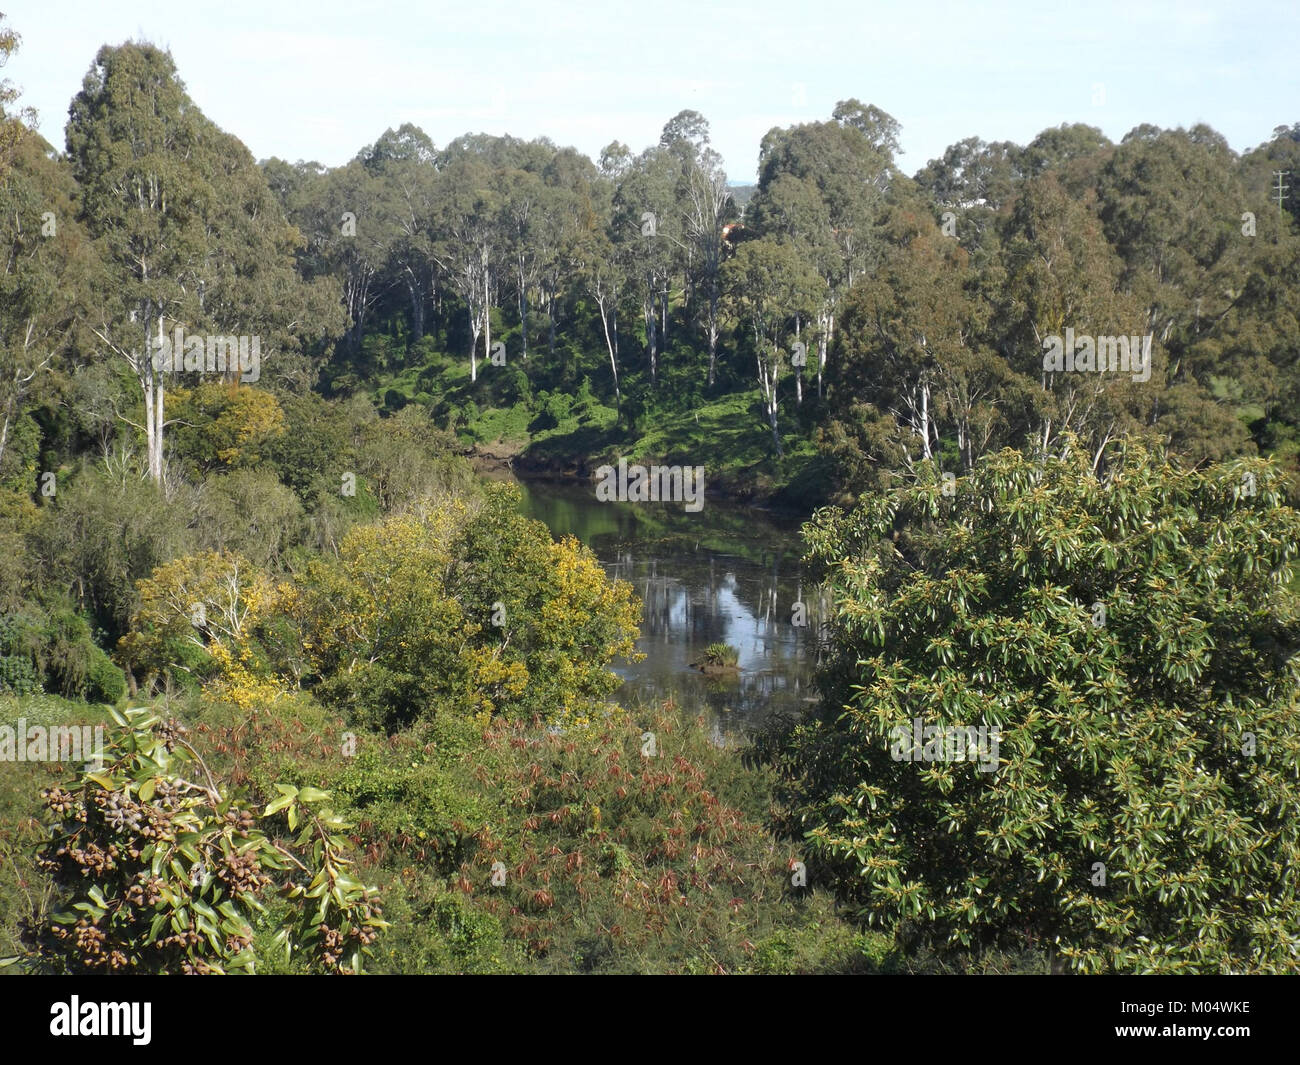 Ipswich Queensland High Resolution Stock Photography And Images Alamy